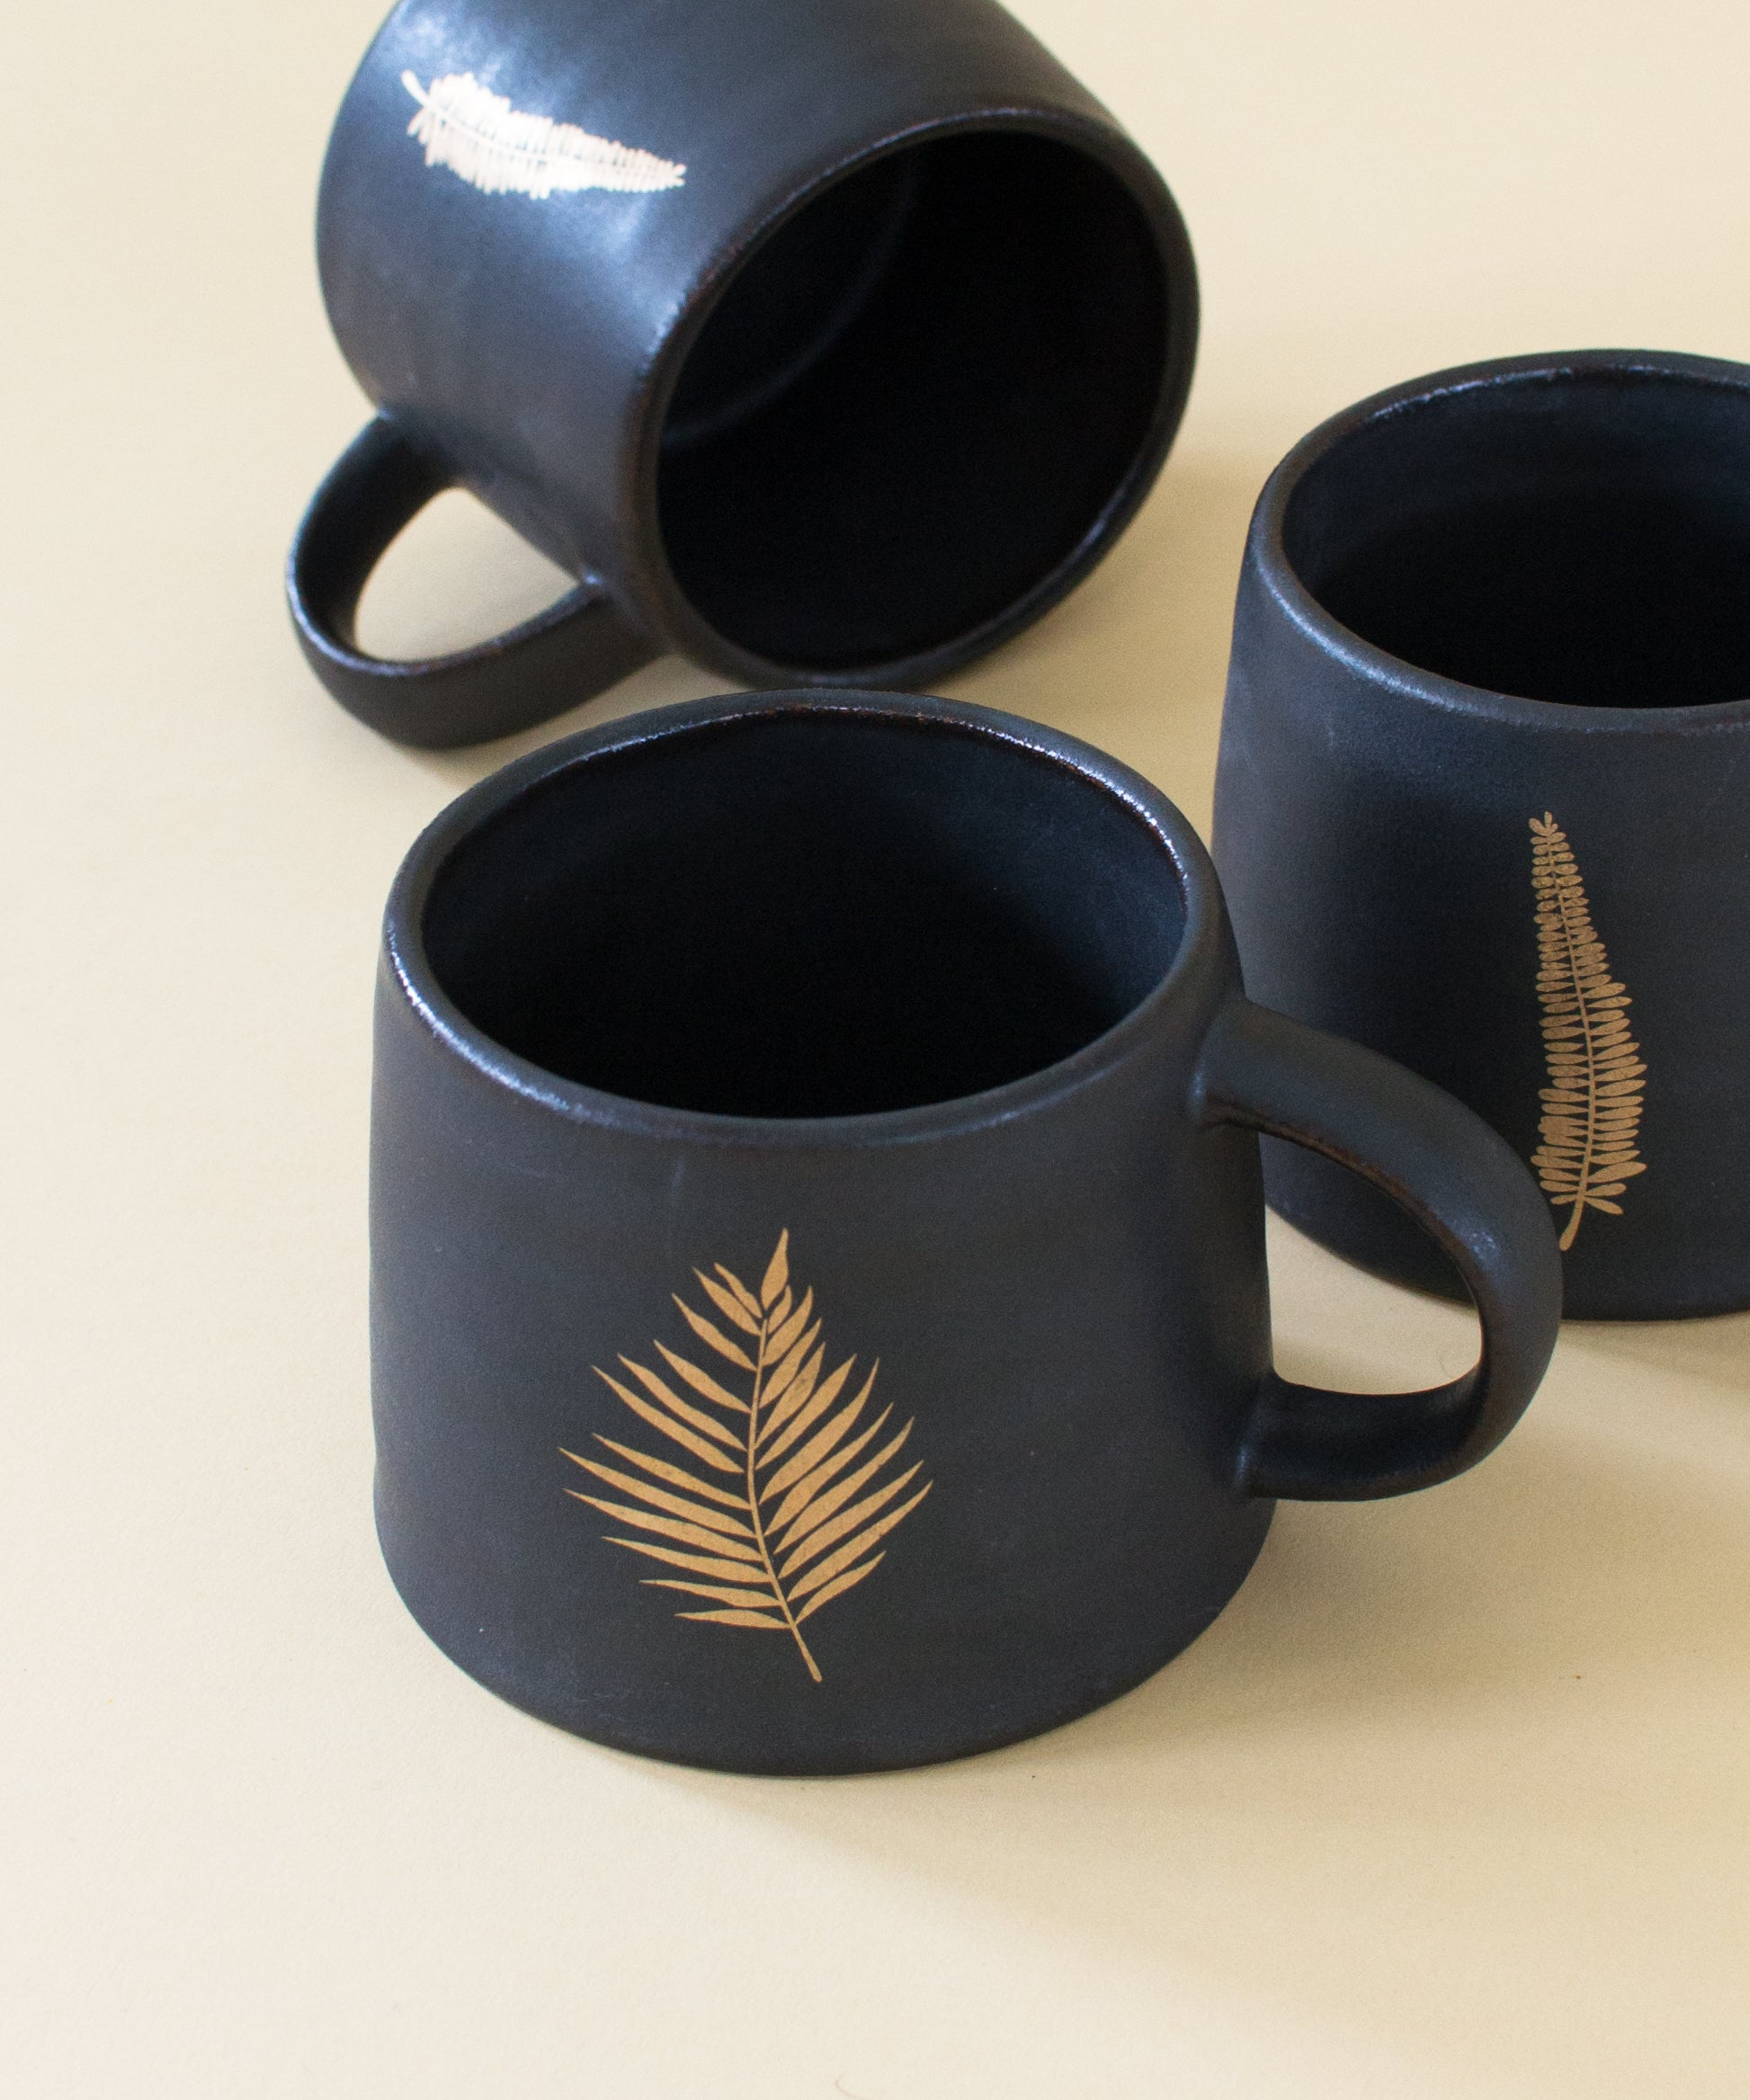 Golden Fern Mug - Sister Golden